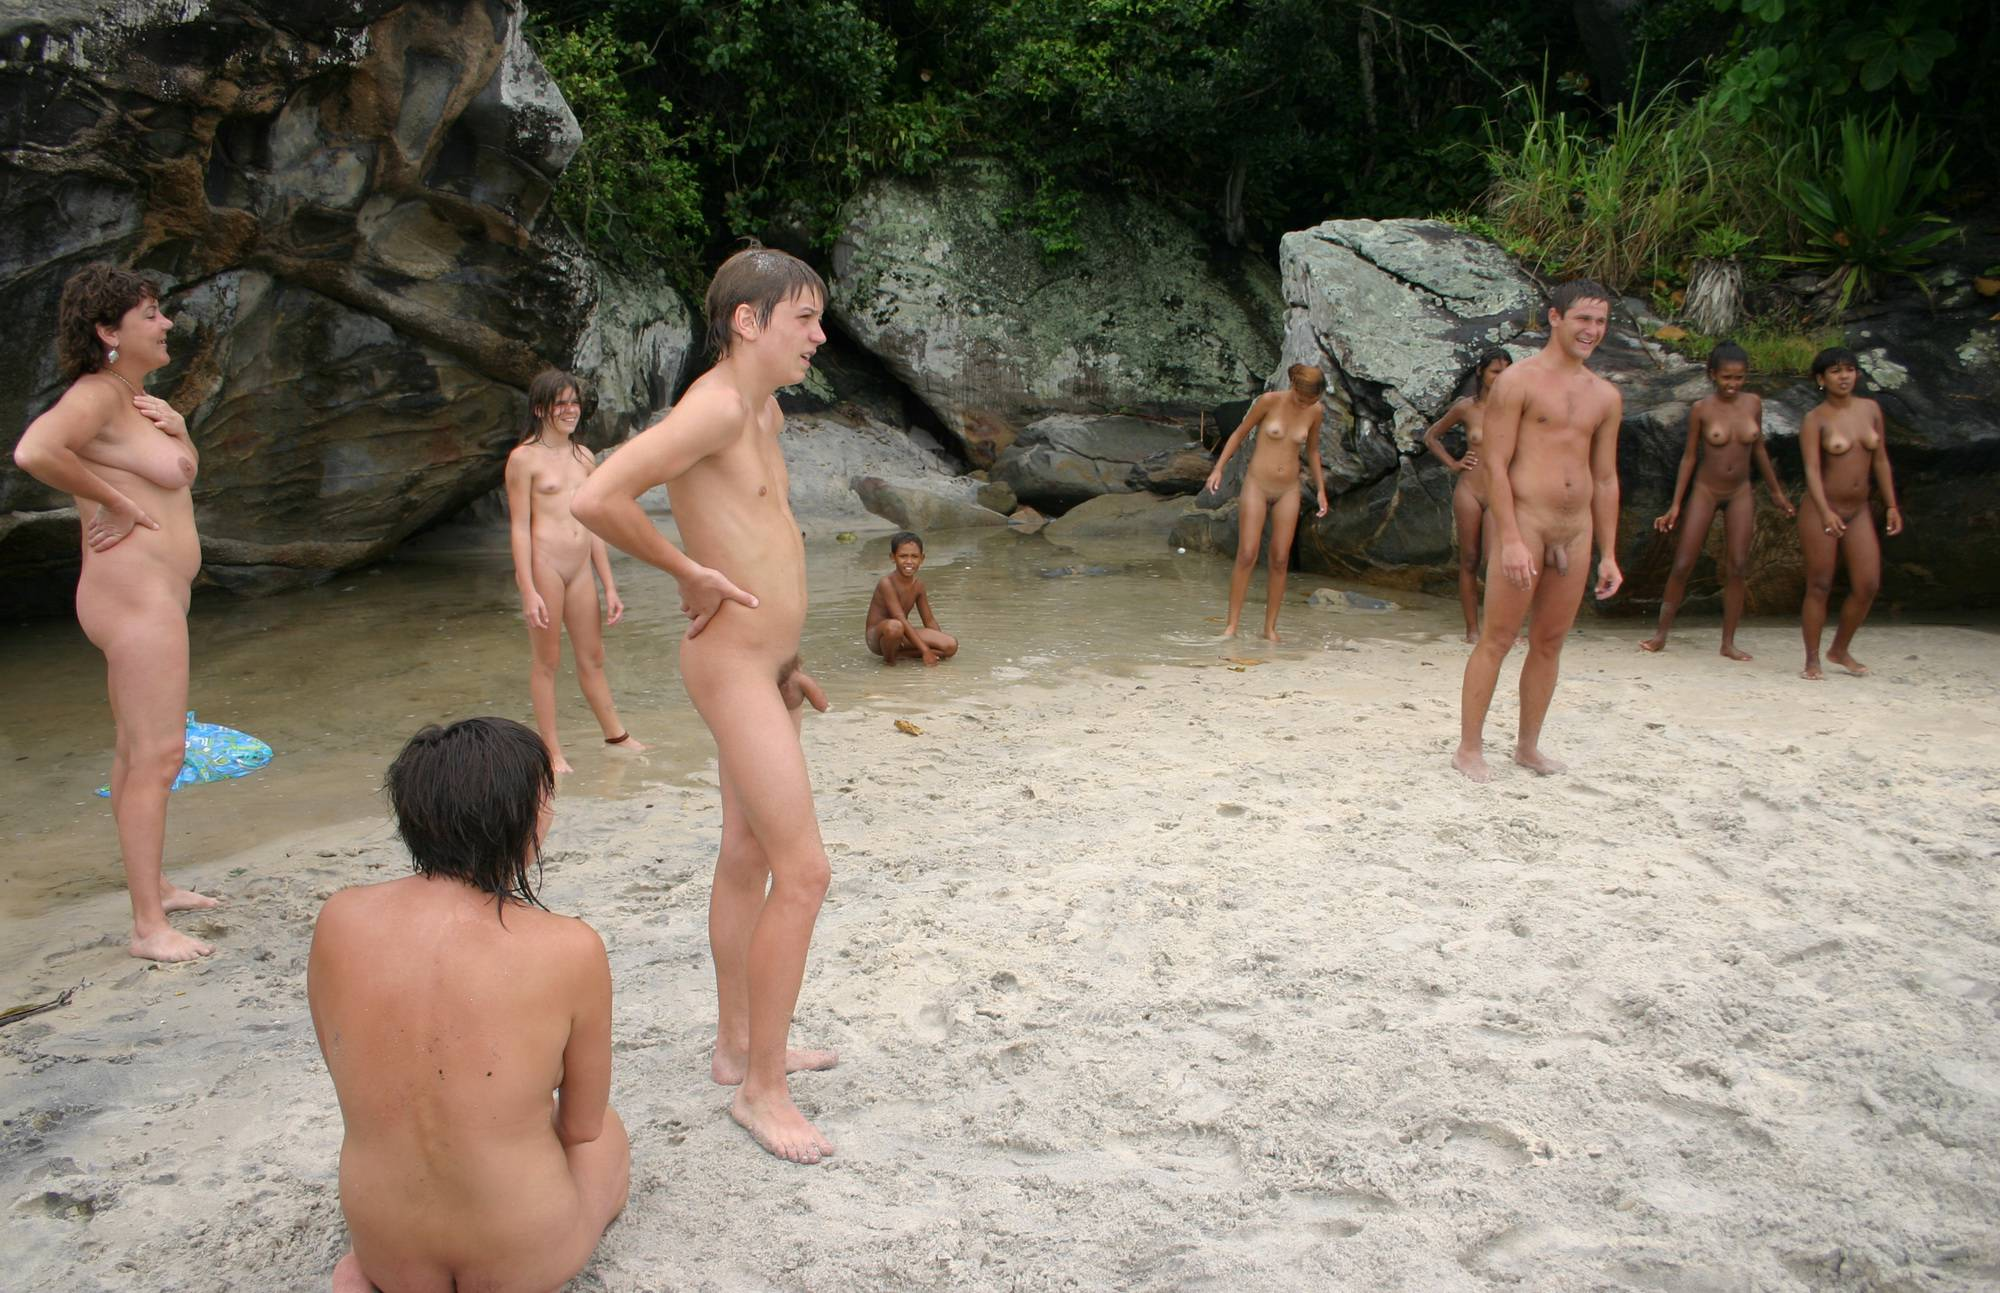 Nudist Pictures Brazilian Game Gathering - 1